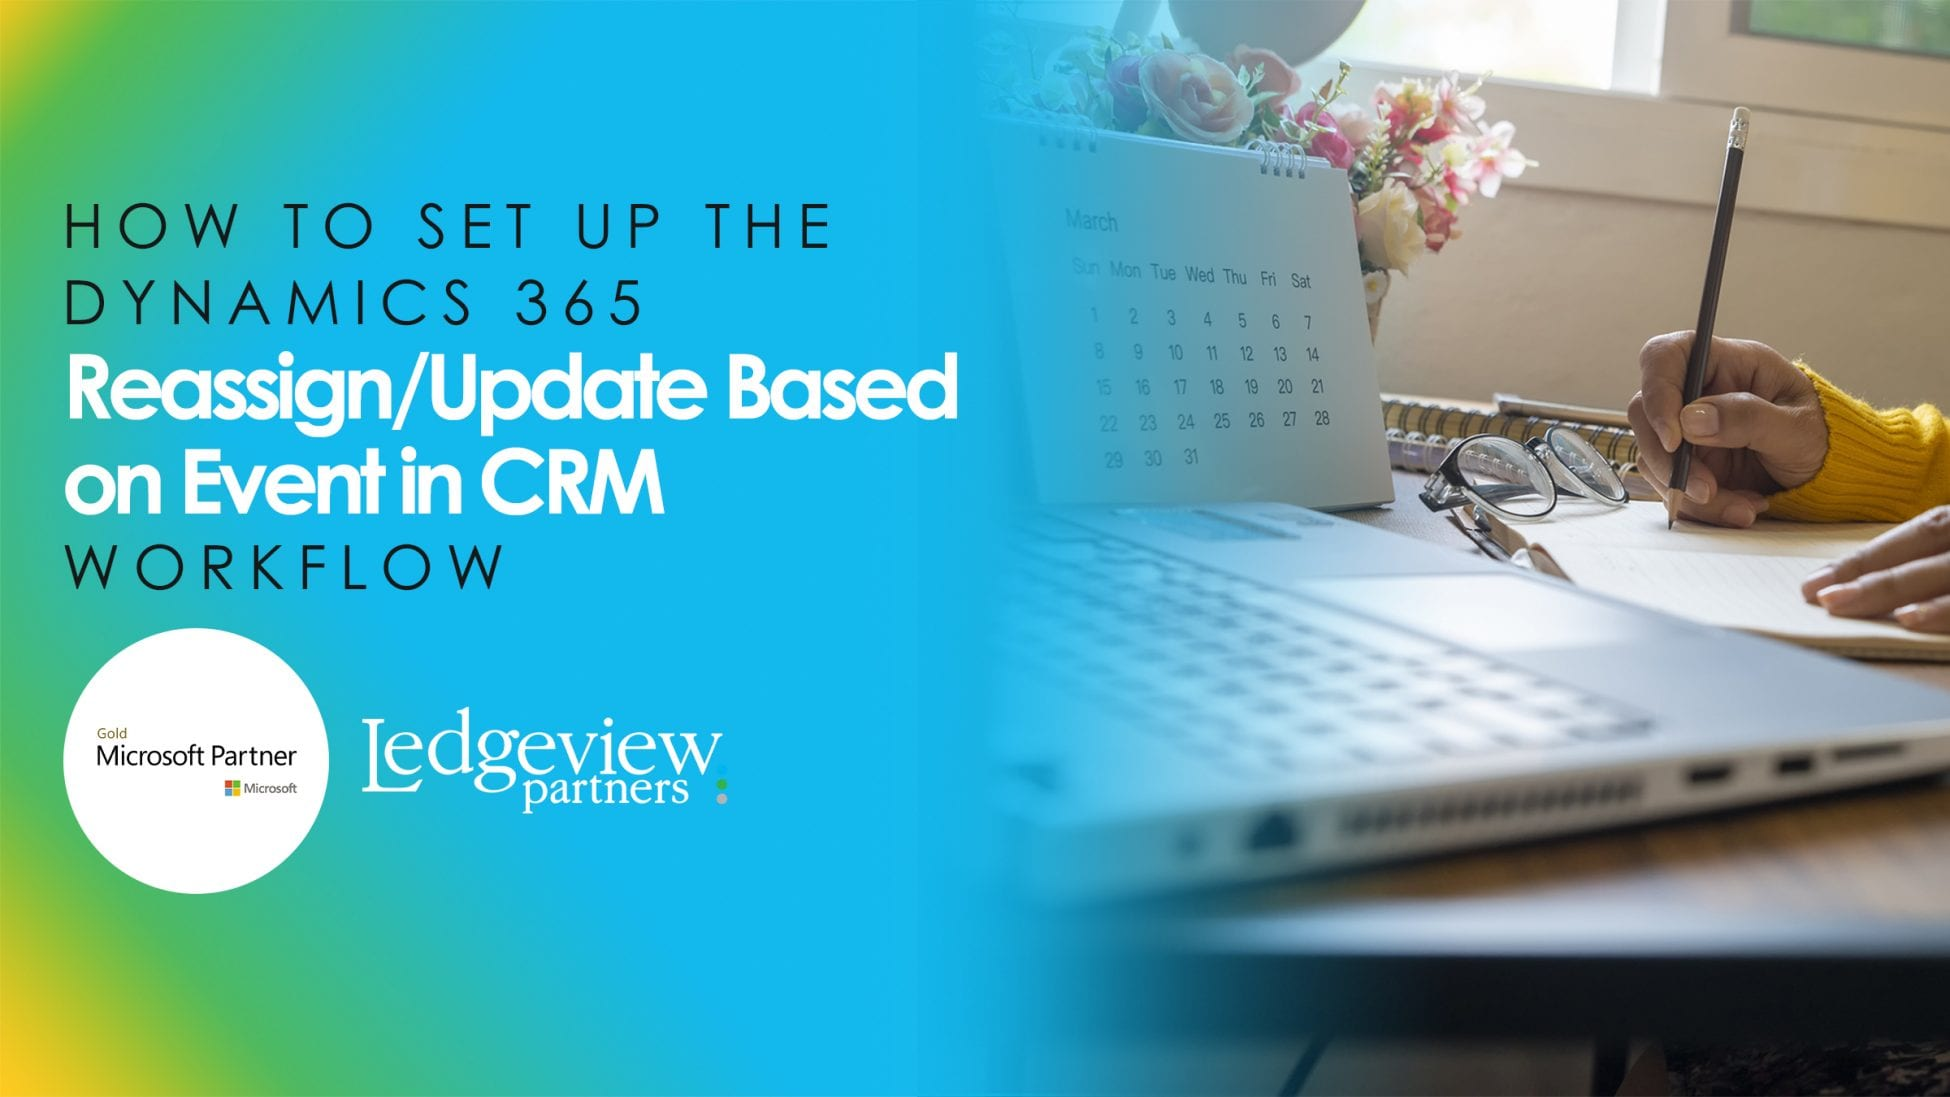 How to Set up the Dynamics 365 Reassign Update Based on Event in CRM Workflow Blog